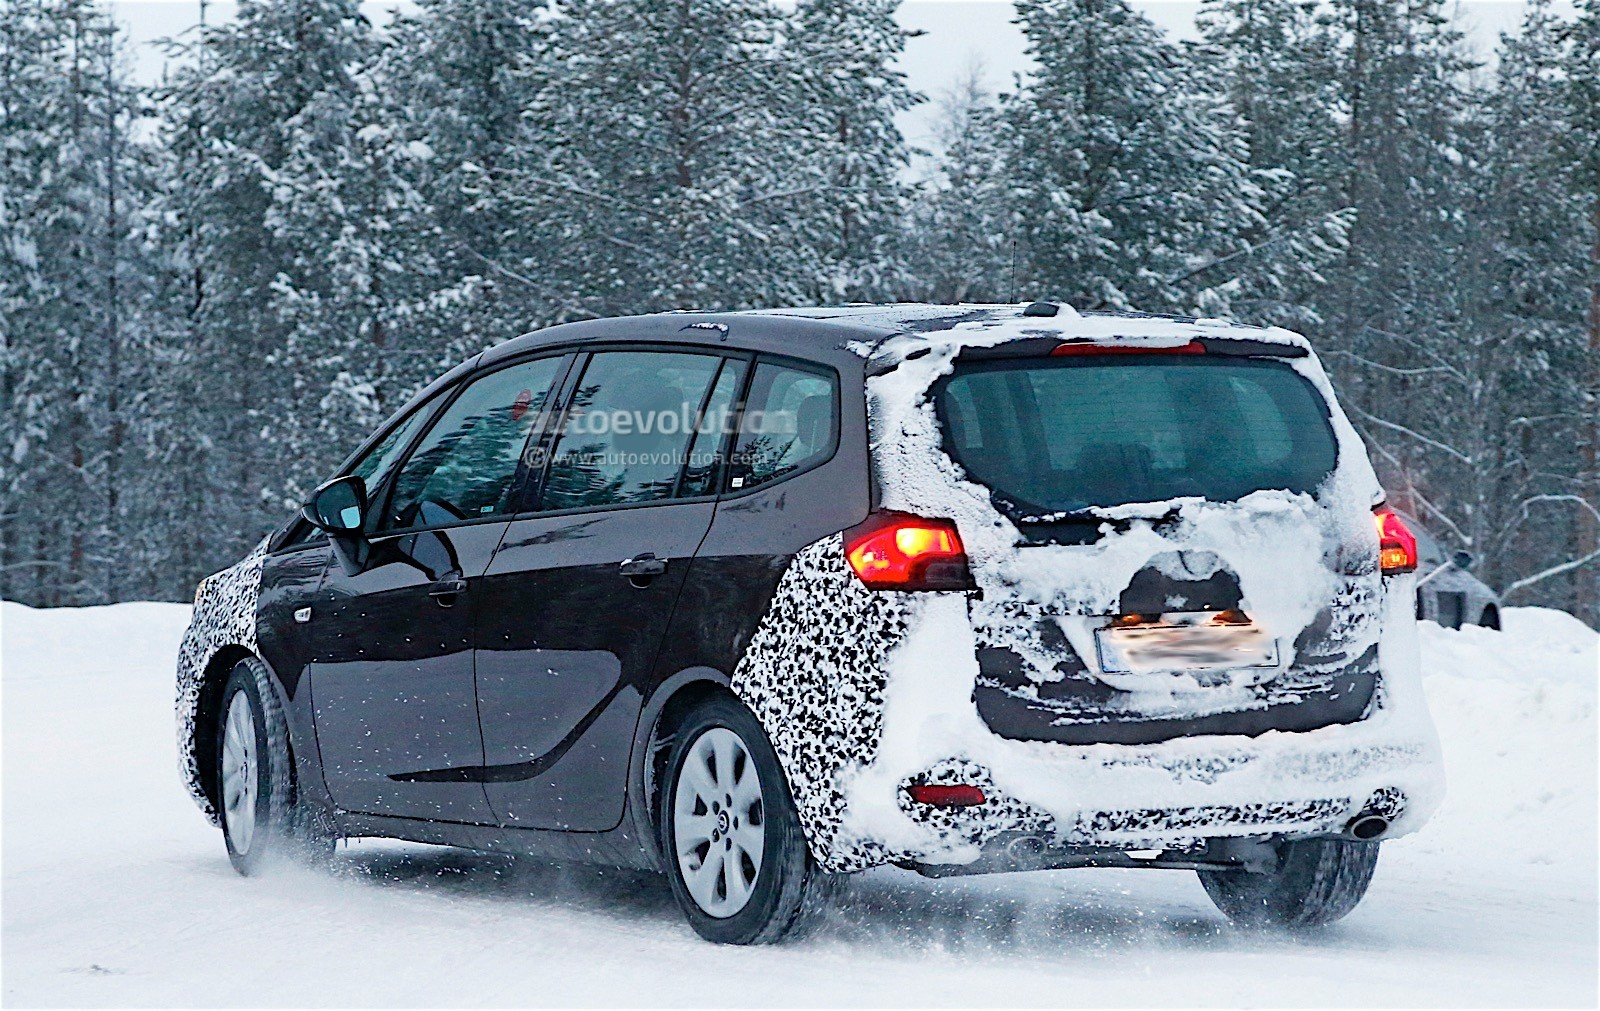 2017 opel zafira facelift spied with less camouflage. Black Bedroom Furniture Sets. Home Design Ideas